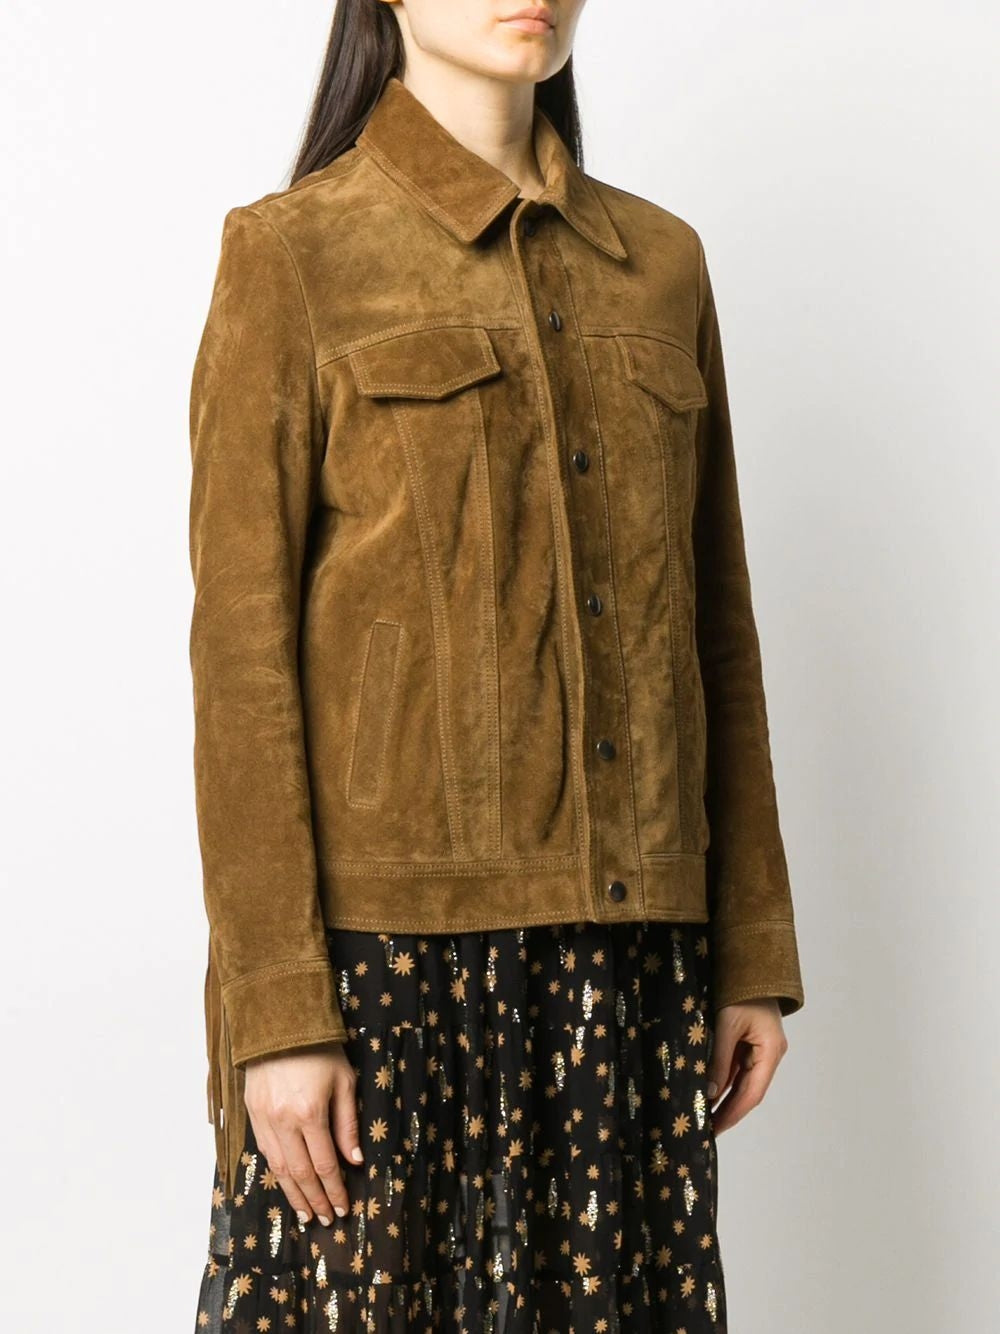 Brown Fringe Suede Leather Jackets